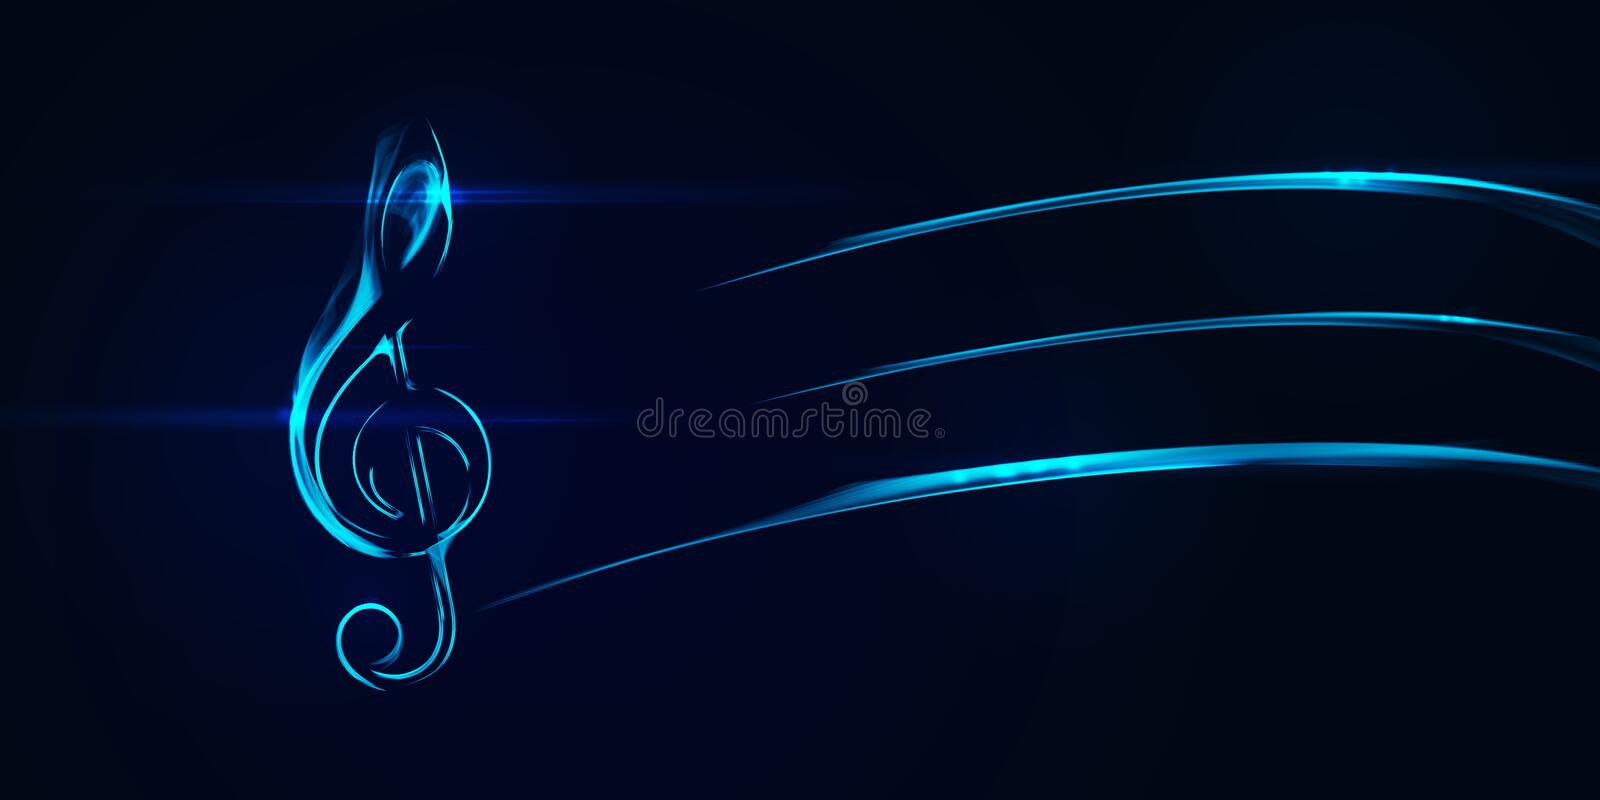 Abstract music clef icon element on black. Composition of glowing lines and motion blur traces. Movement and innovation concept stock illustration